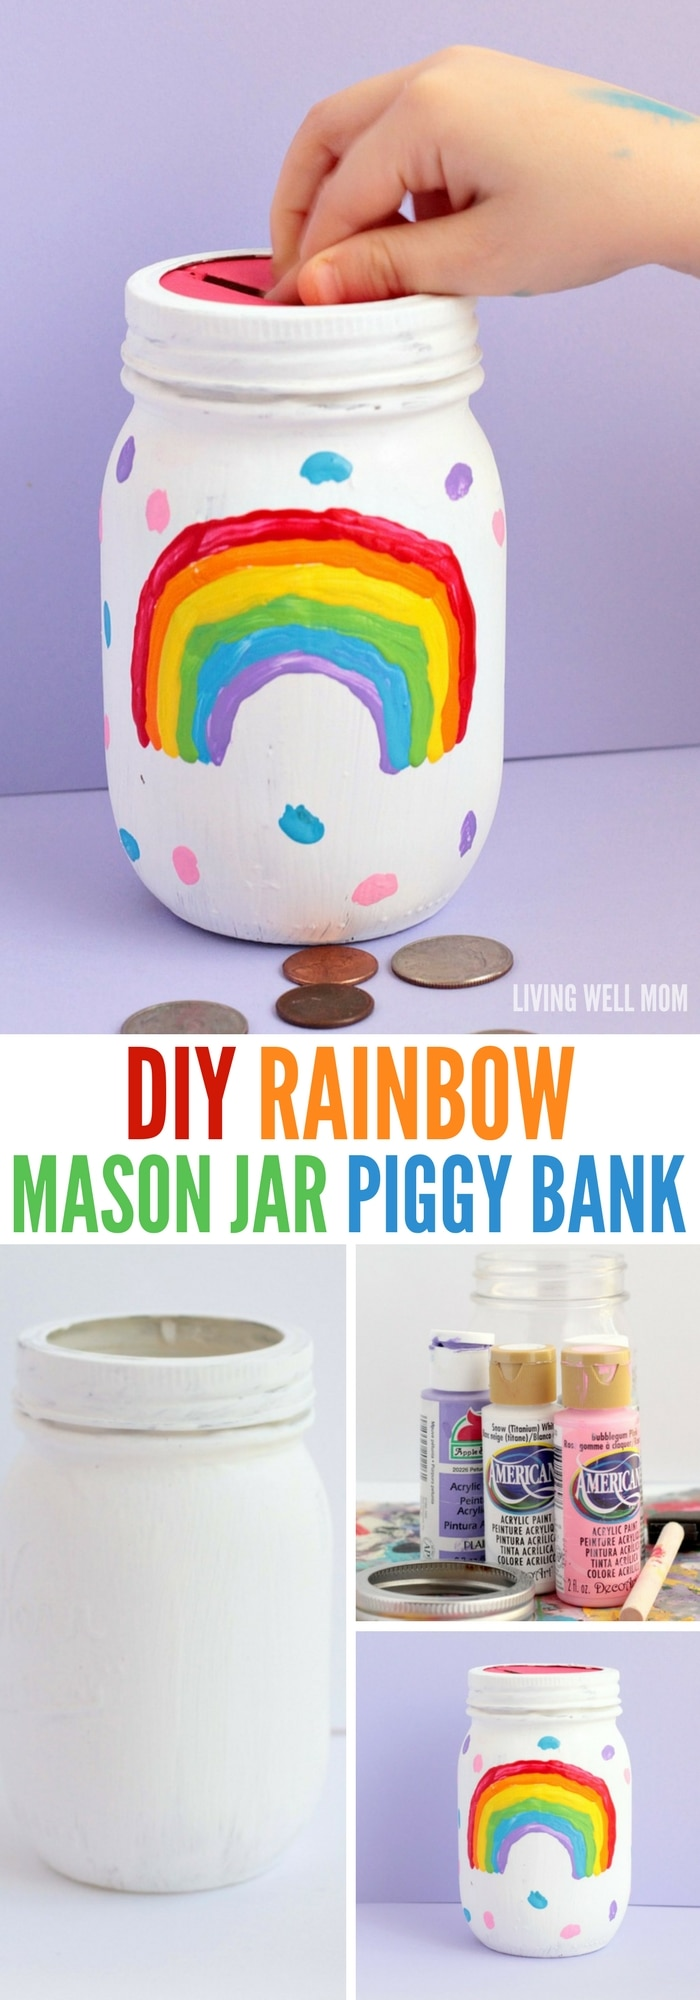 Diy rainbow mason jar piggy bank for How to make a piggy bank you can t open